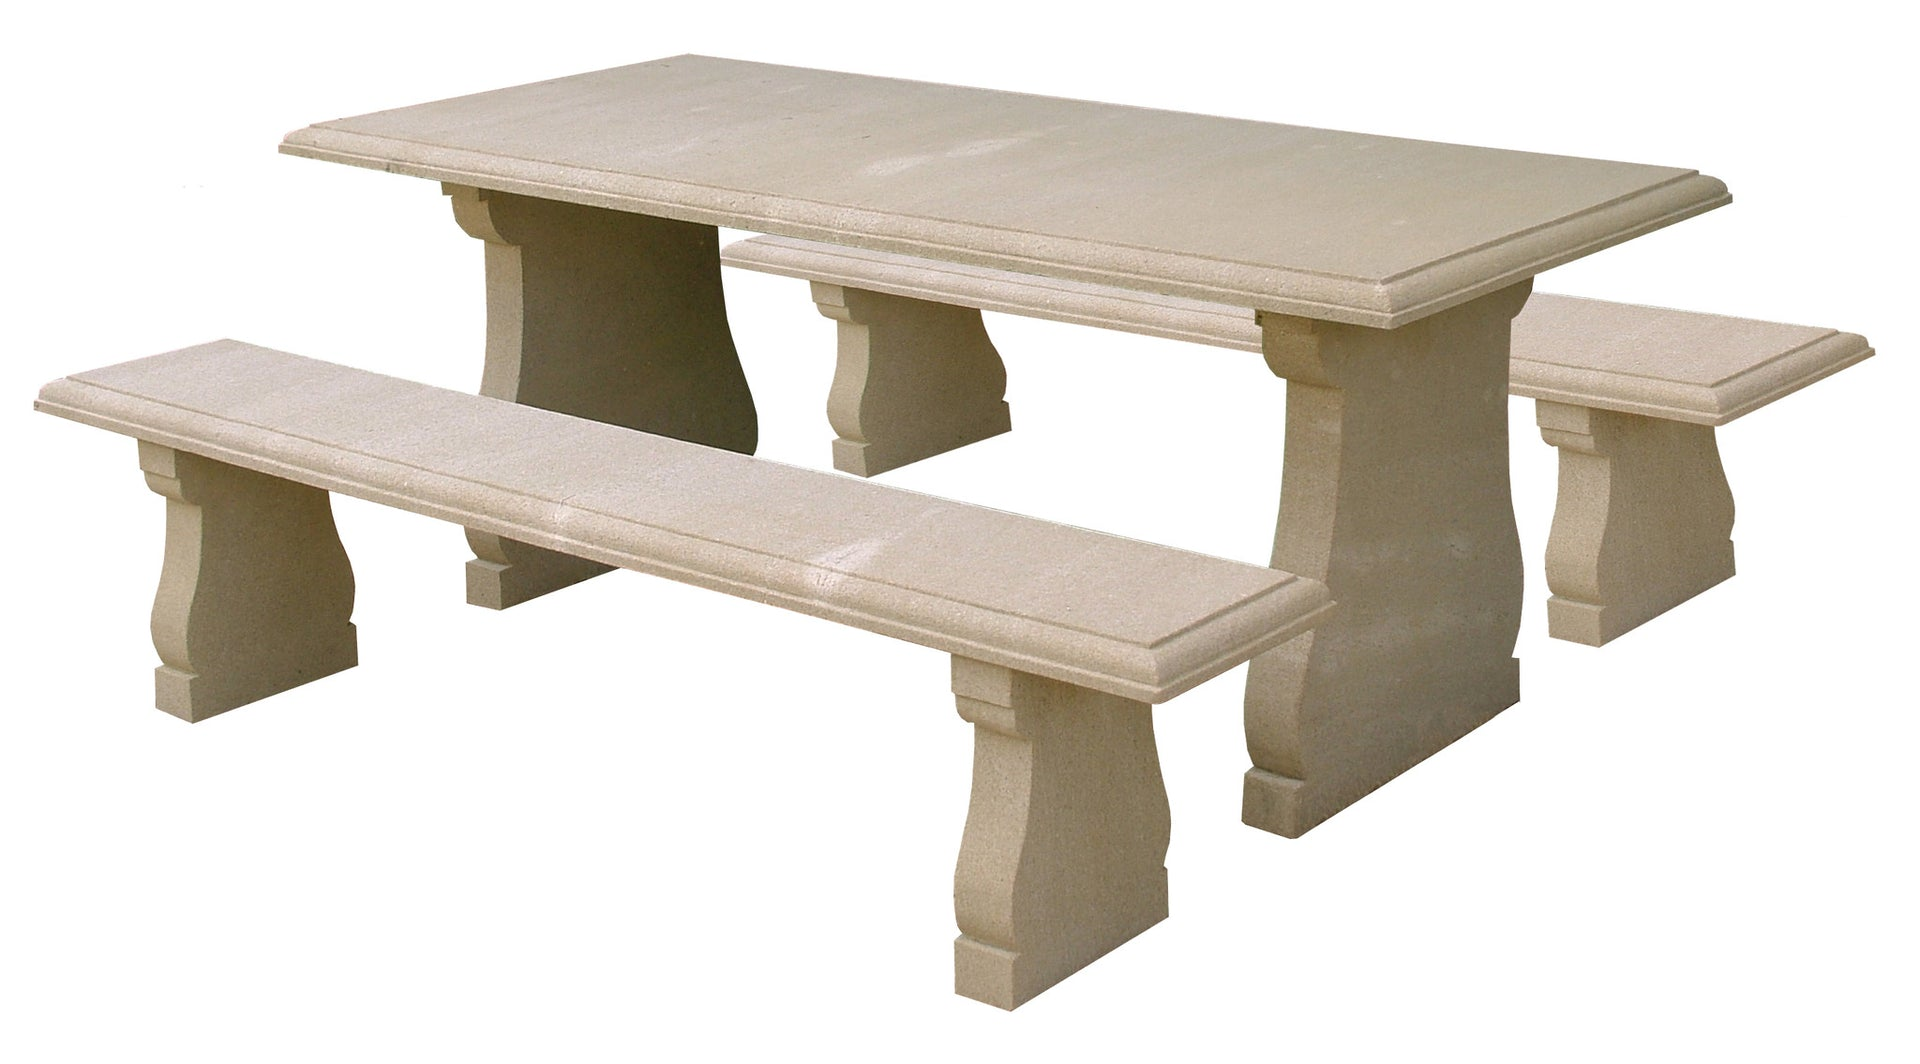 Stone Garden Table & Bench Set - Sandstone - After The Antique, UK